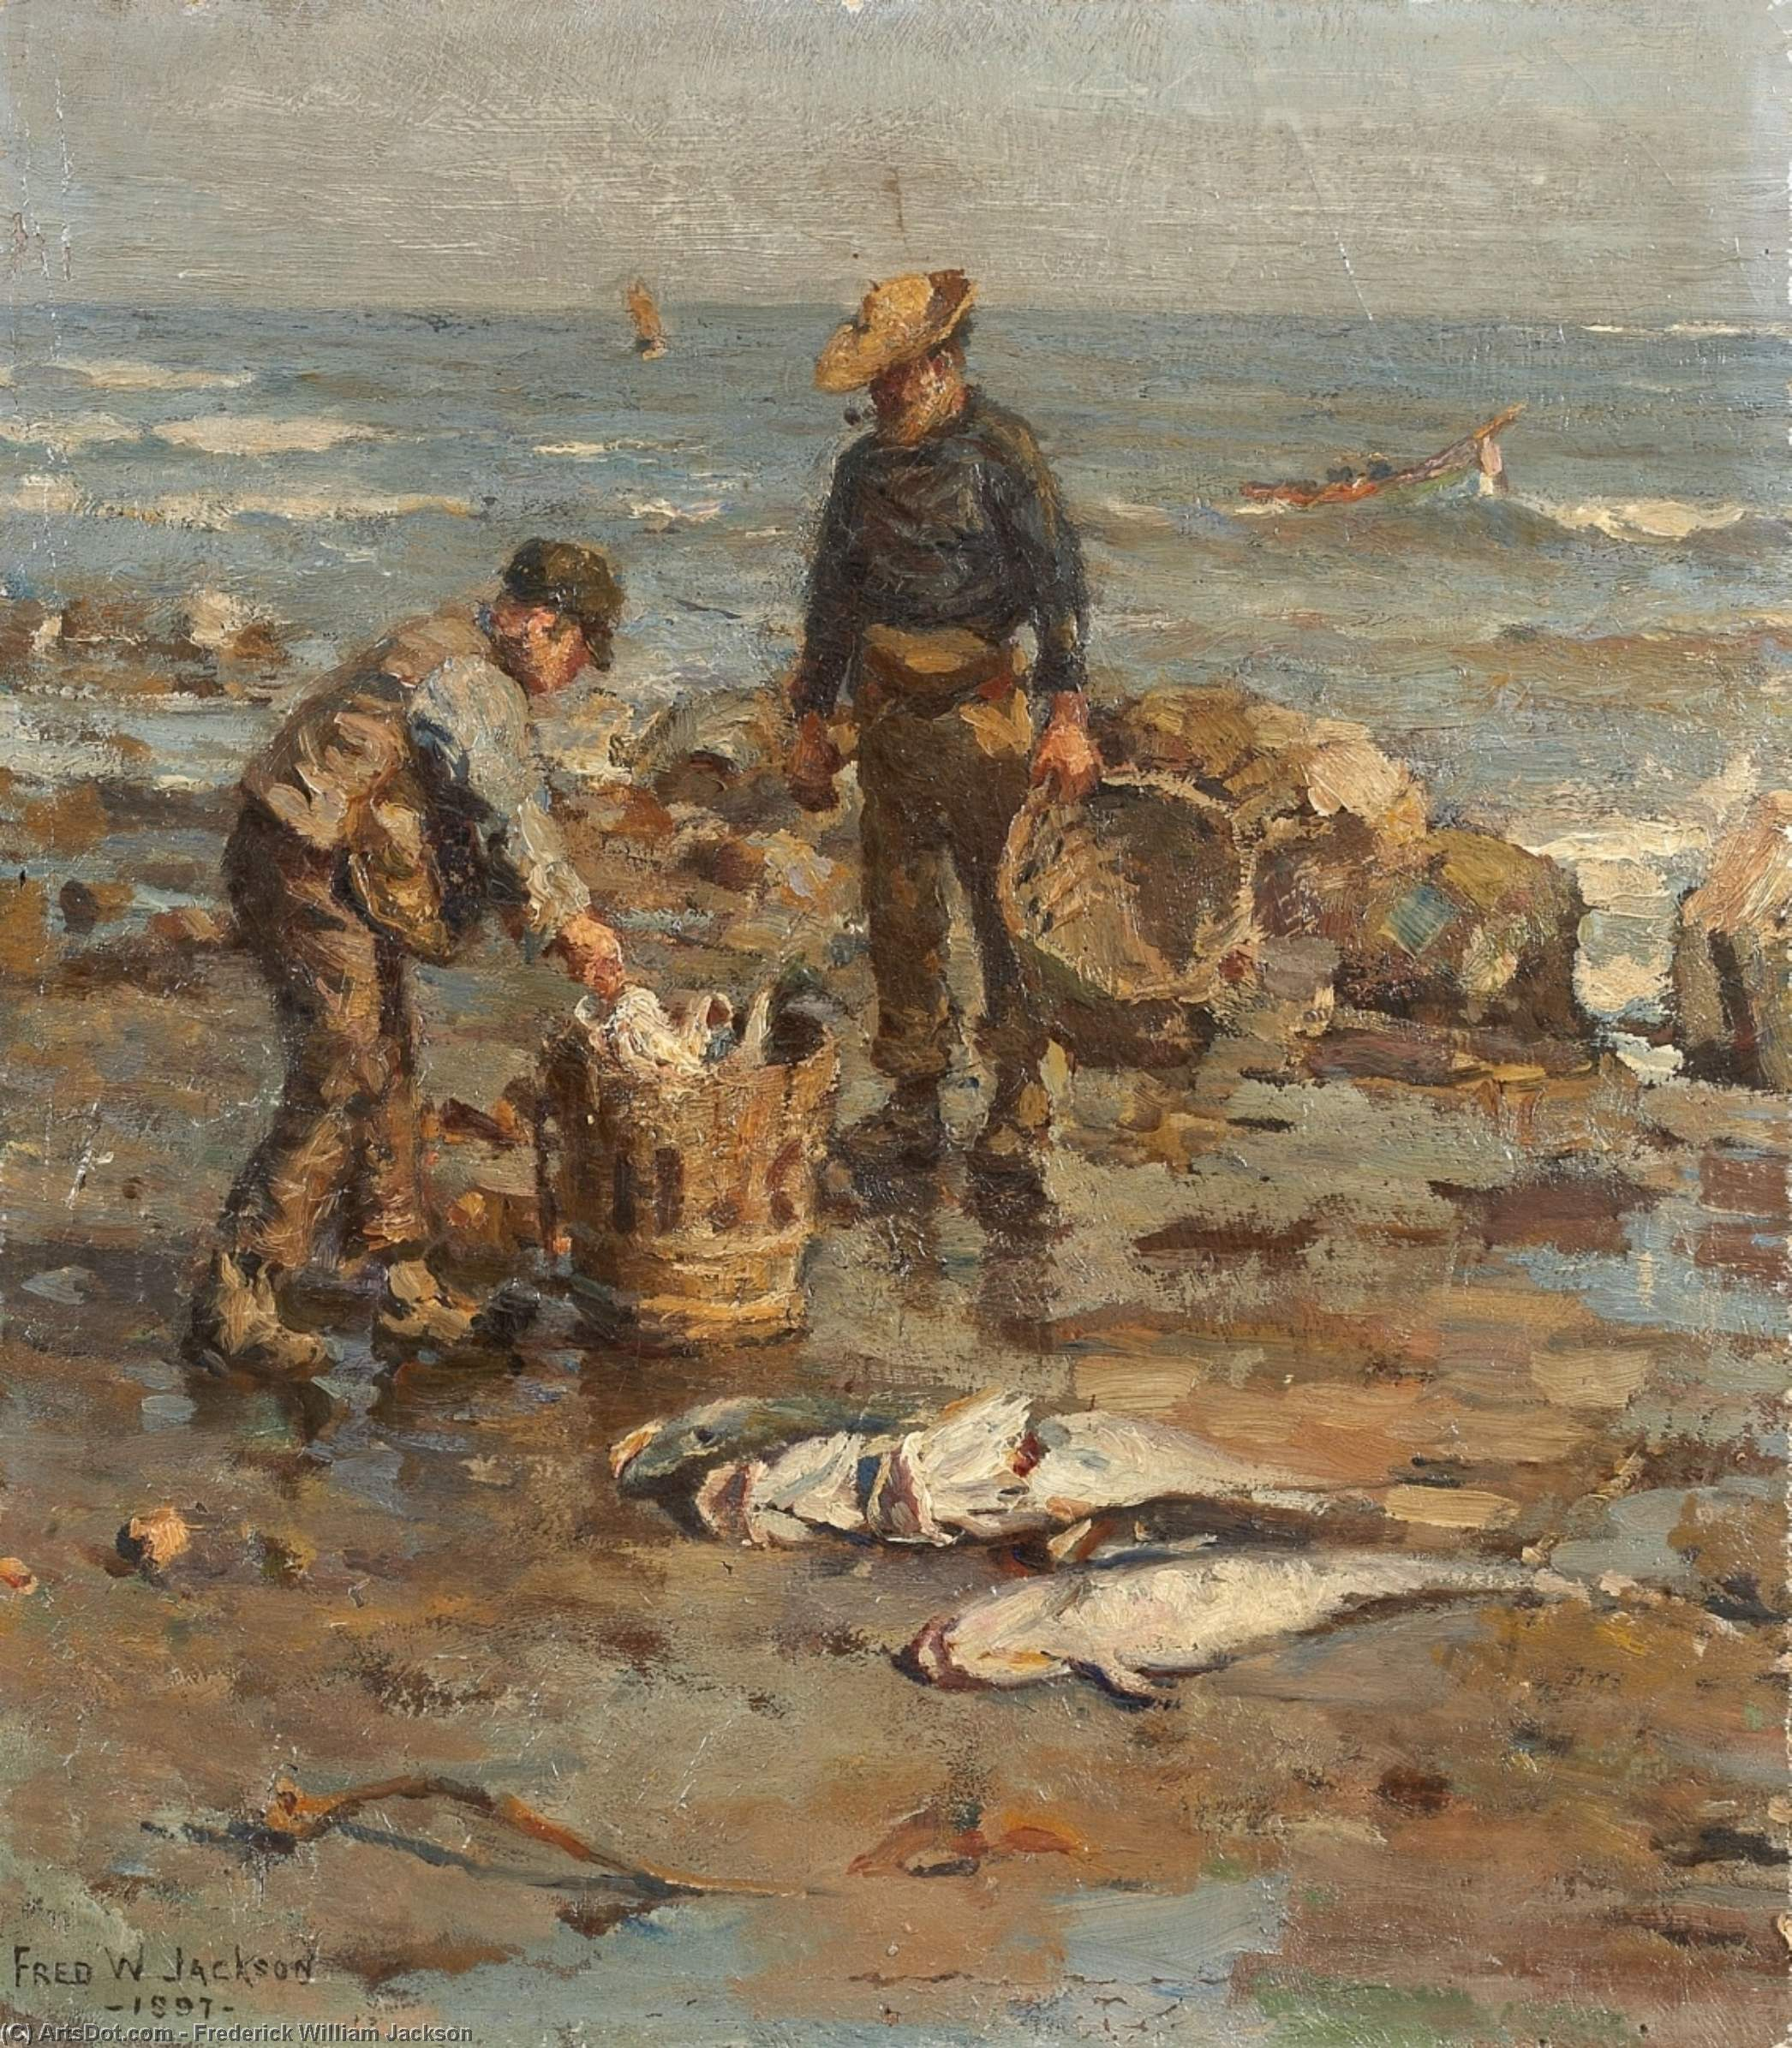 Strandszene Мит zwei fischern по Frederick William Jackson (1843-1942, United States)